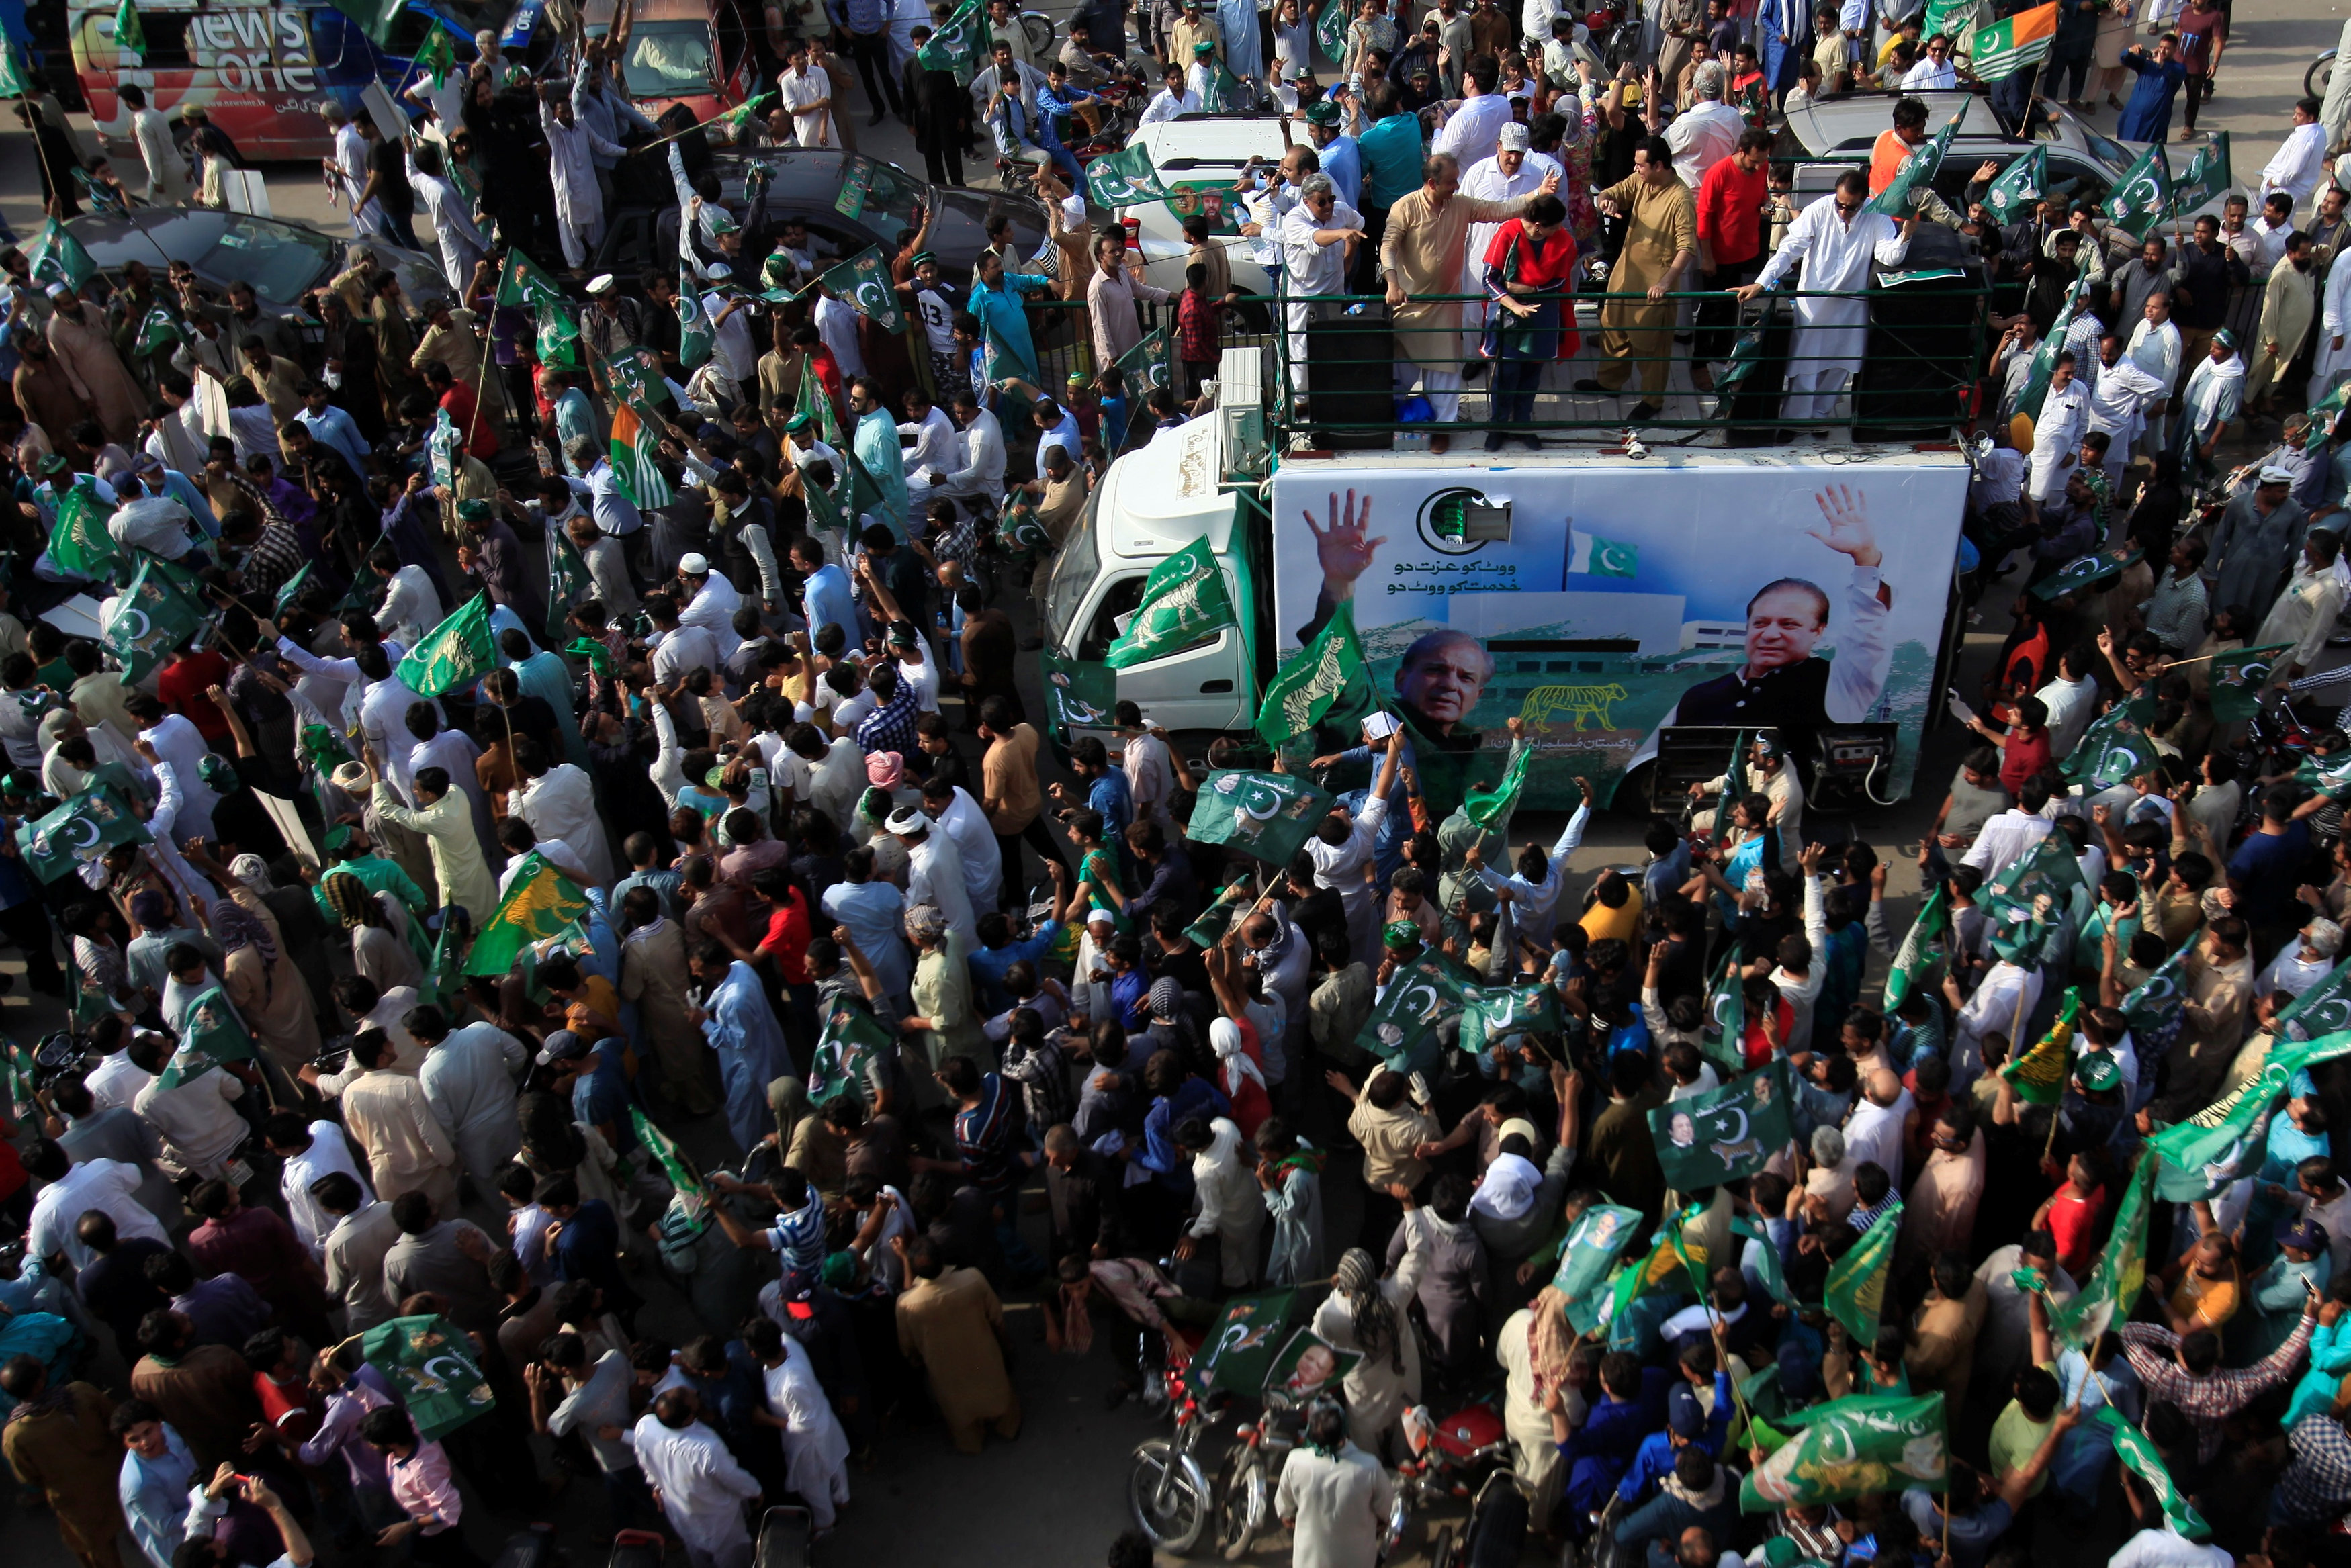 FILE PHOTO: Supporters of the Pakistan Muslim League - Nawaz (PML-N) chant march towards the airport to welcome ousted Prime Minister Nawaz Sharif and his daughter Maryam, in Lahore, Pakistan July 13, 2018. REUTERS/Mohsin Raza/File Photo